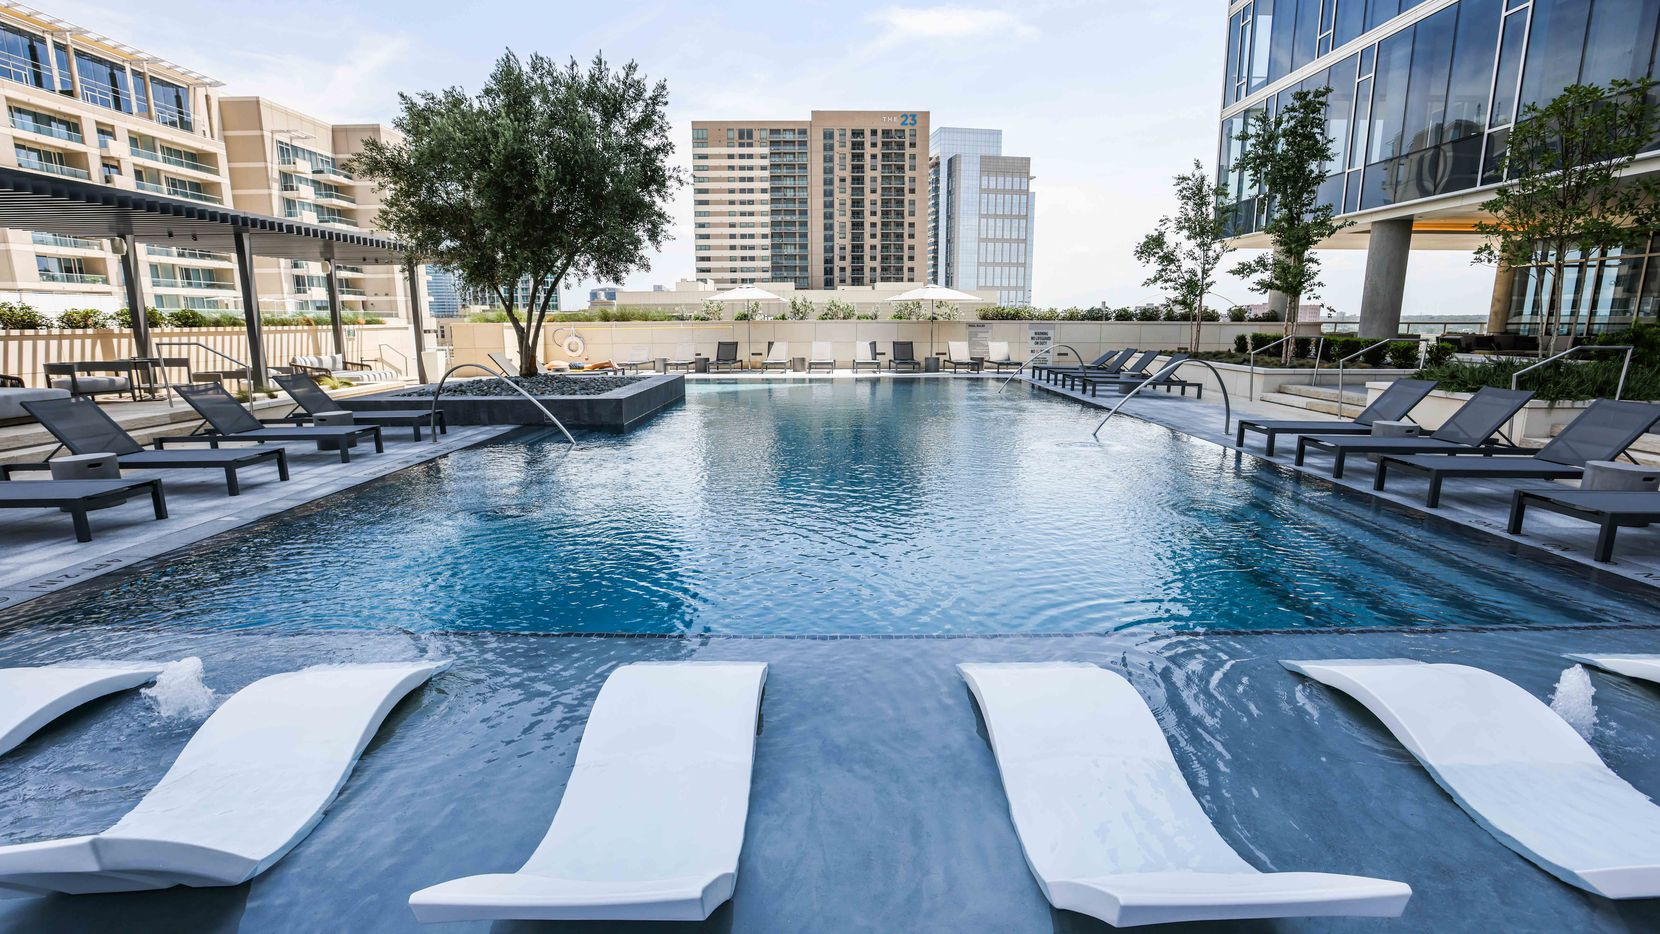 Hines just completed its 40-story Victor apartment high-rise in Dallas' Victory Park.